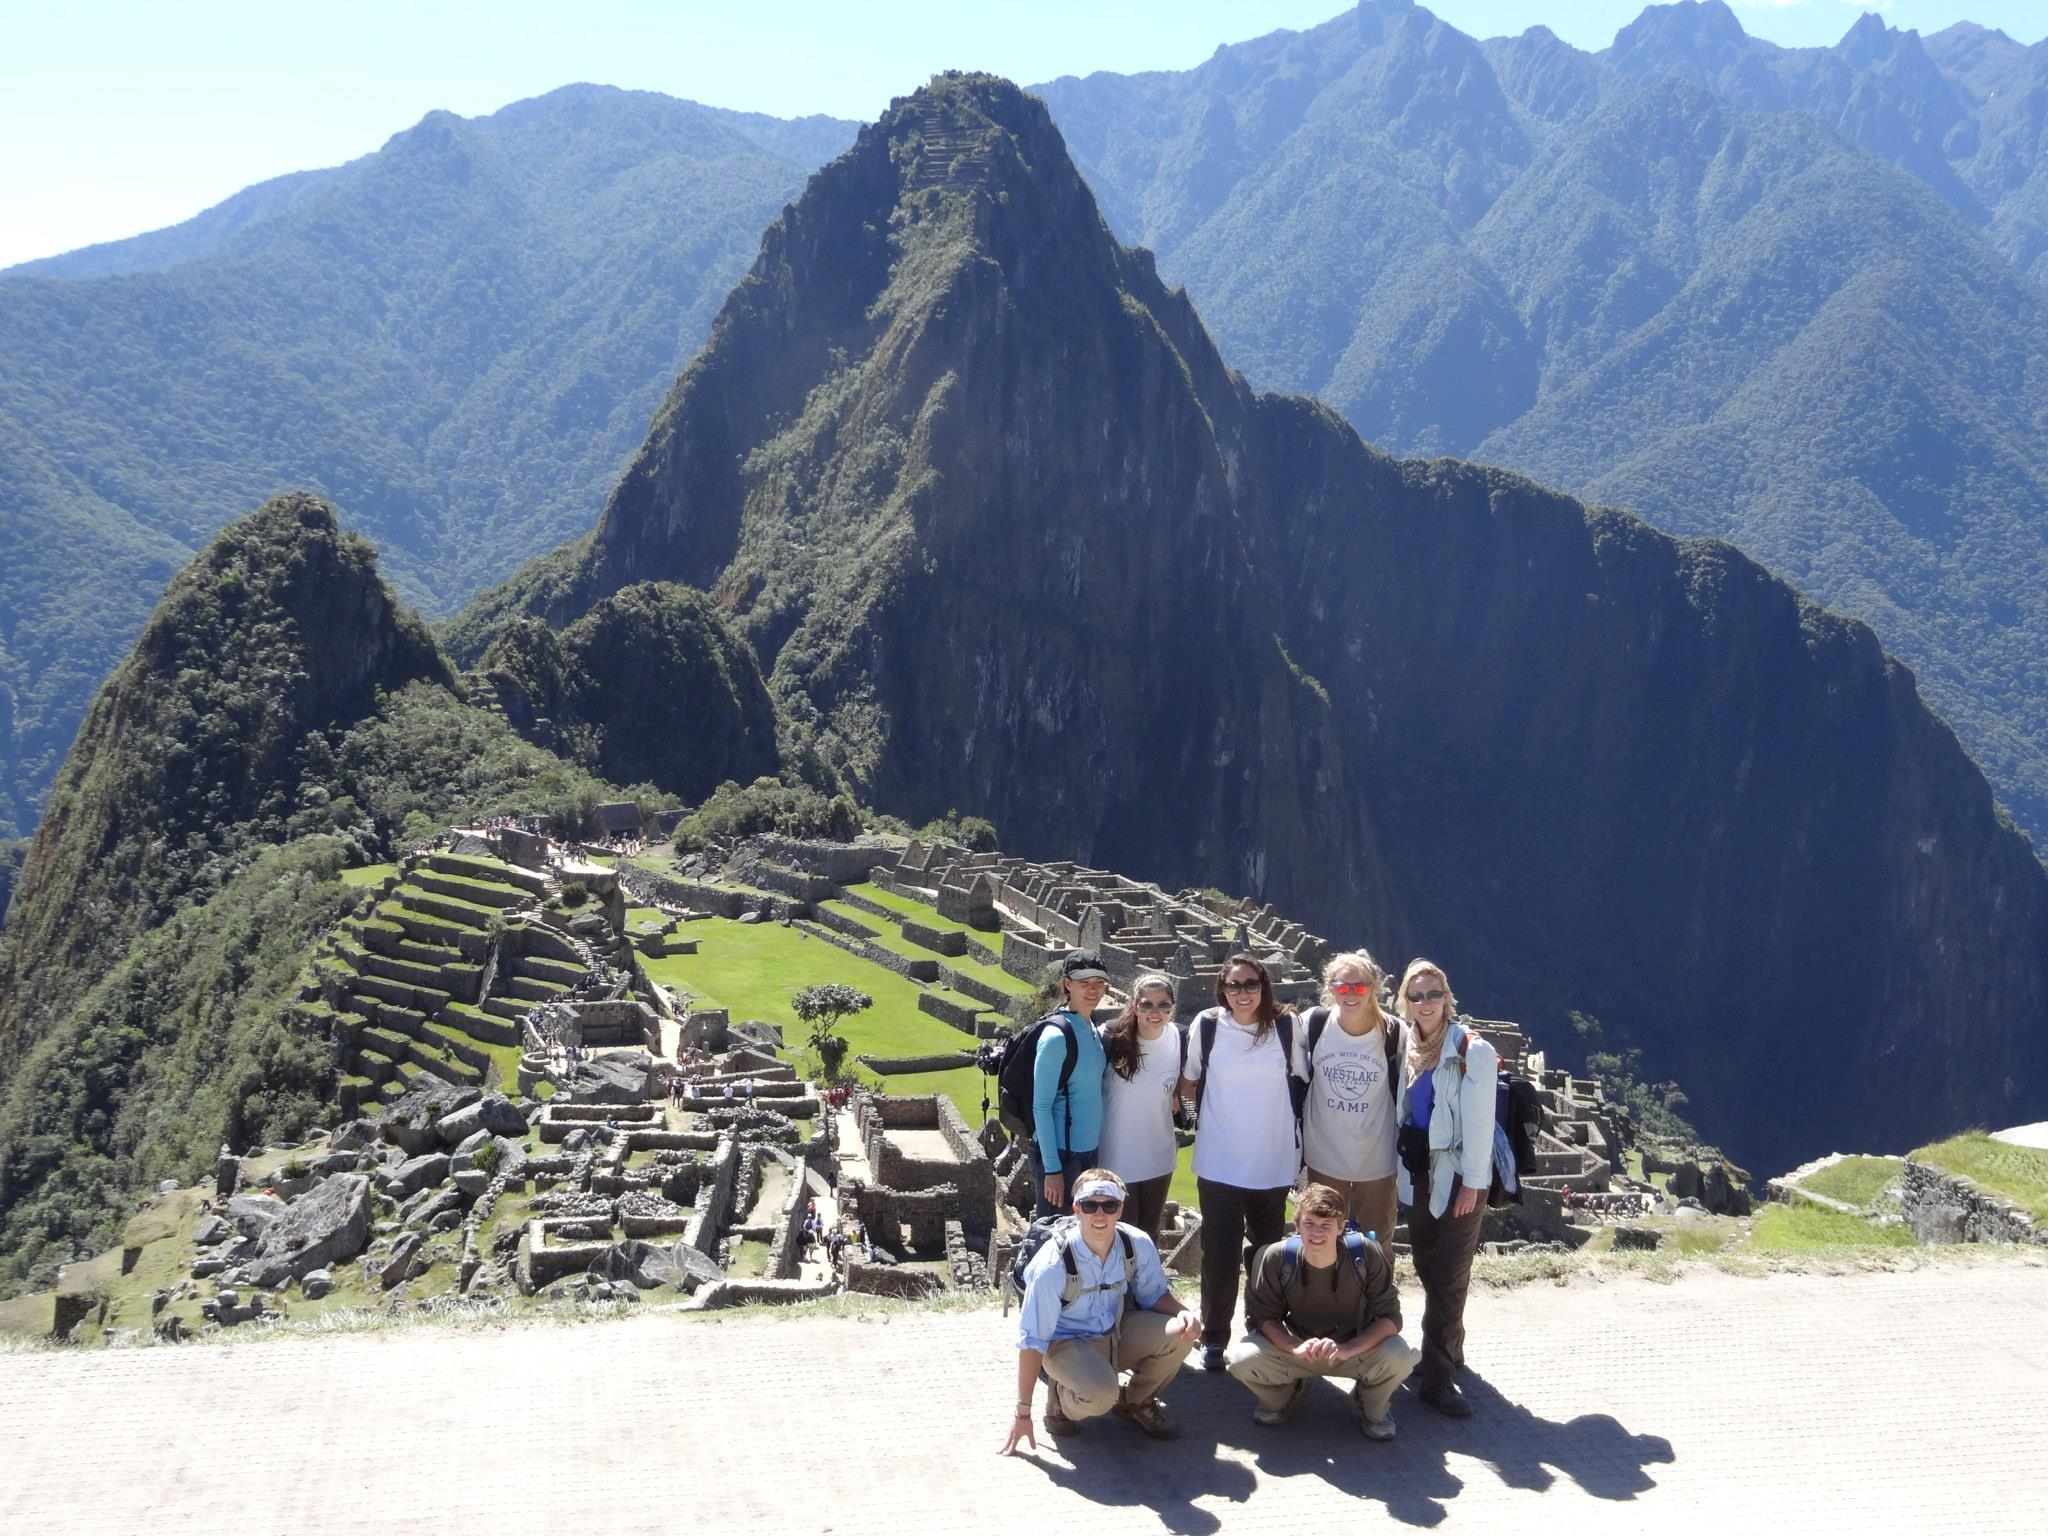 Visiting Machu Picchu in between building a playground for rural children